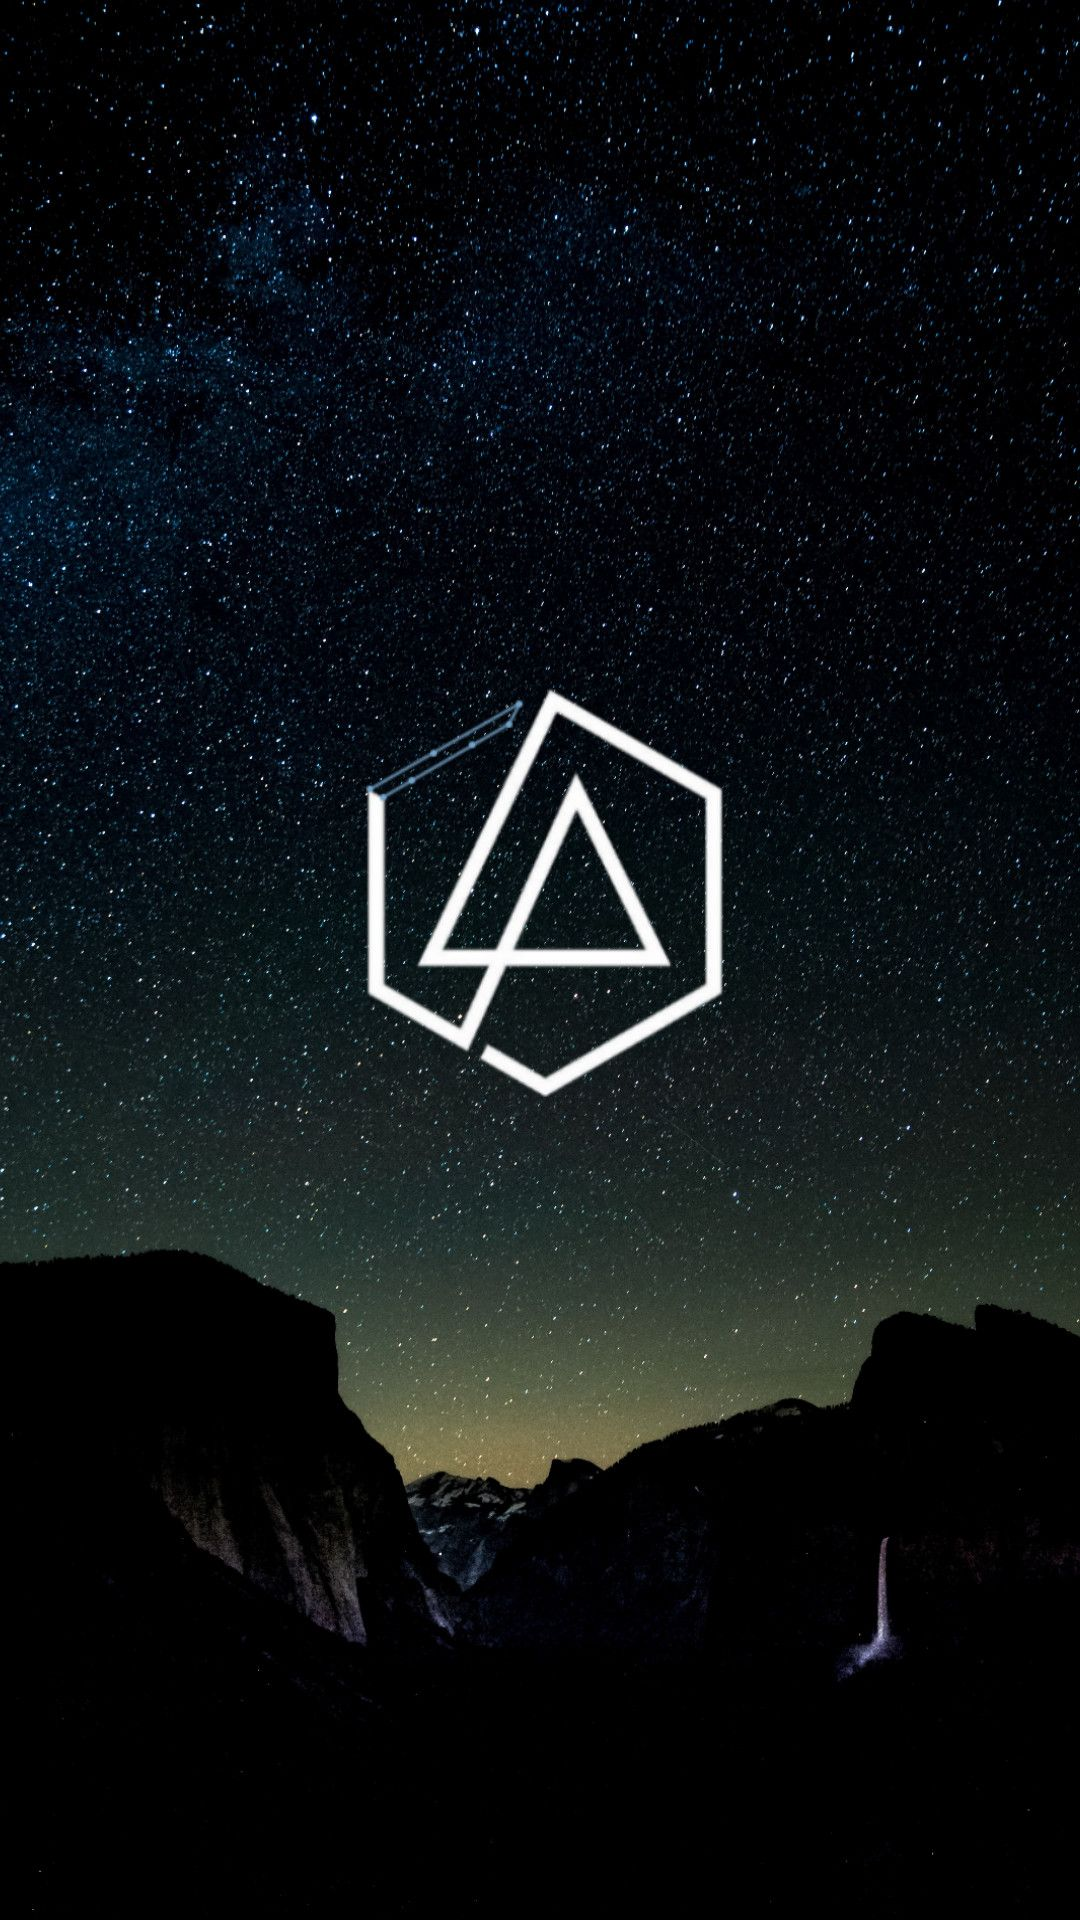 Fall Out Boy Wallpaper Mania Linkin Park Wallpapers 1080x1920 Windows 7 L P